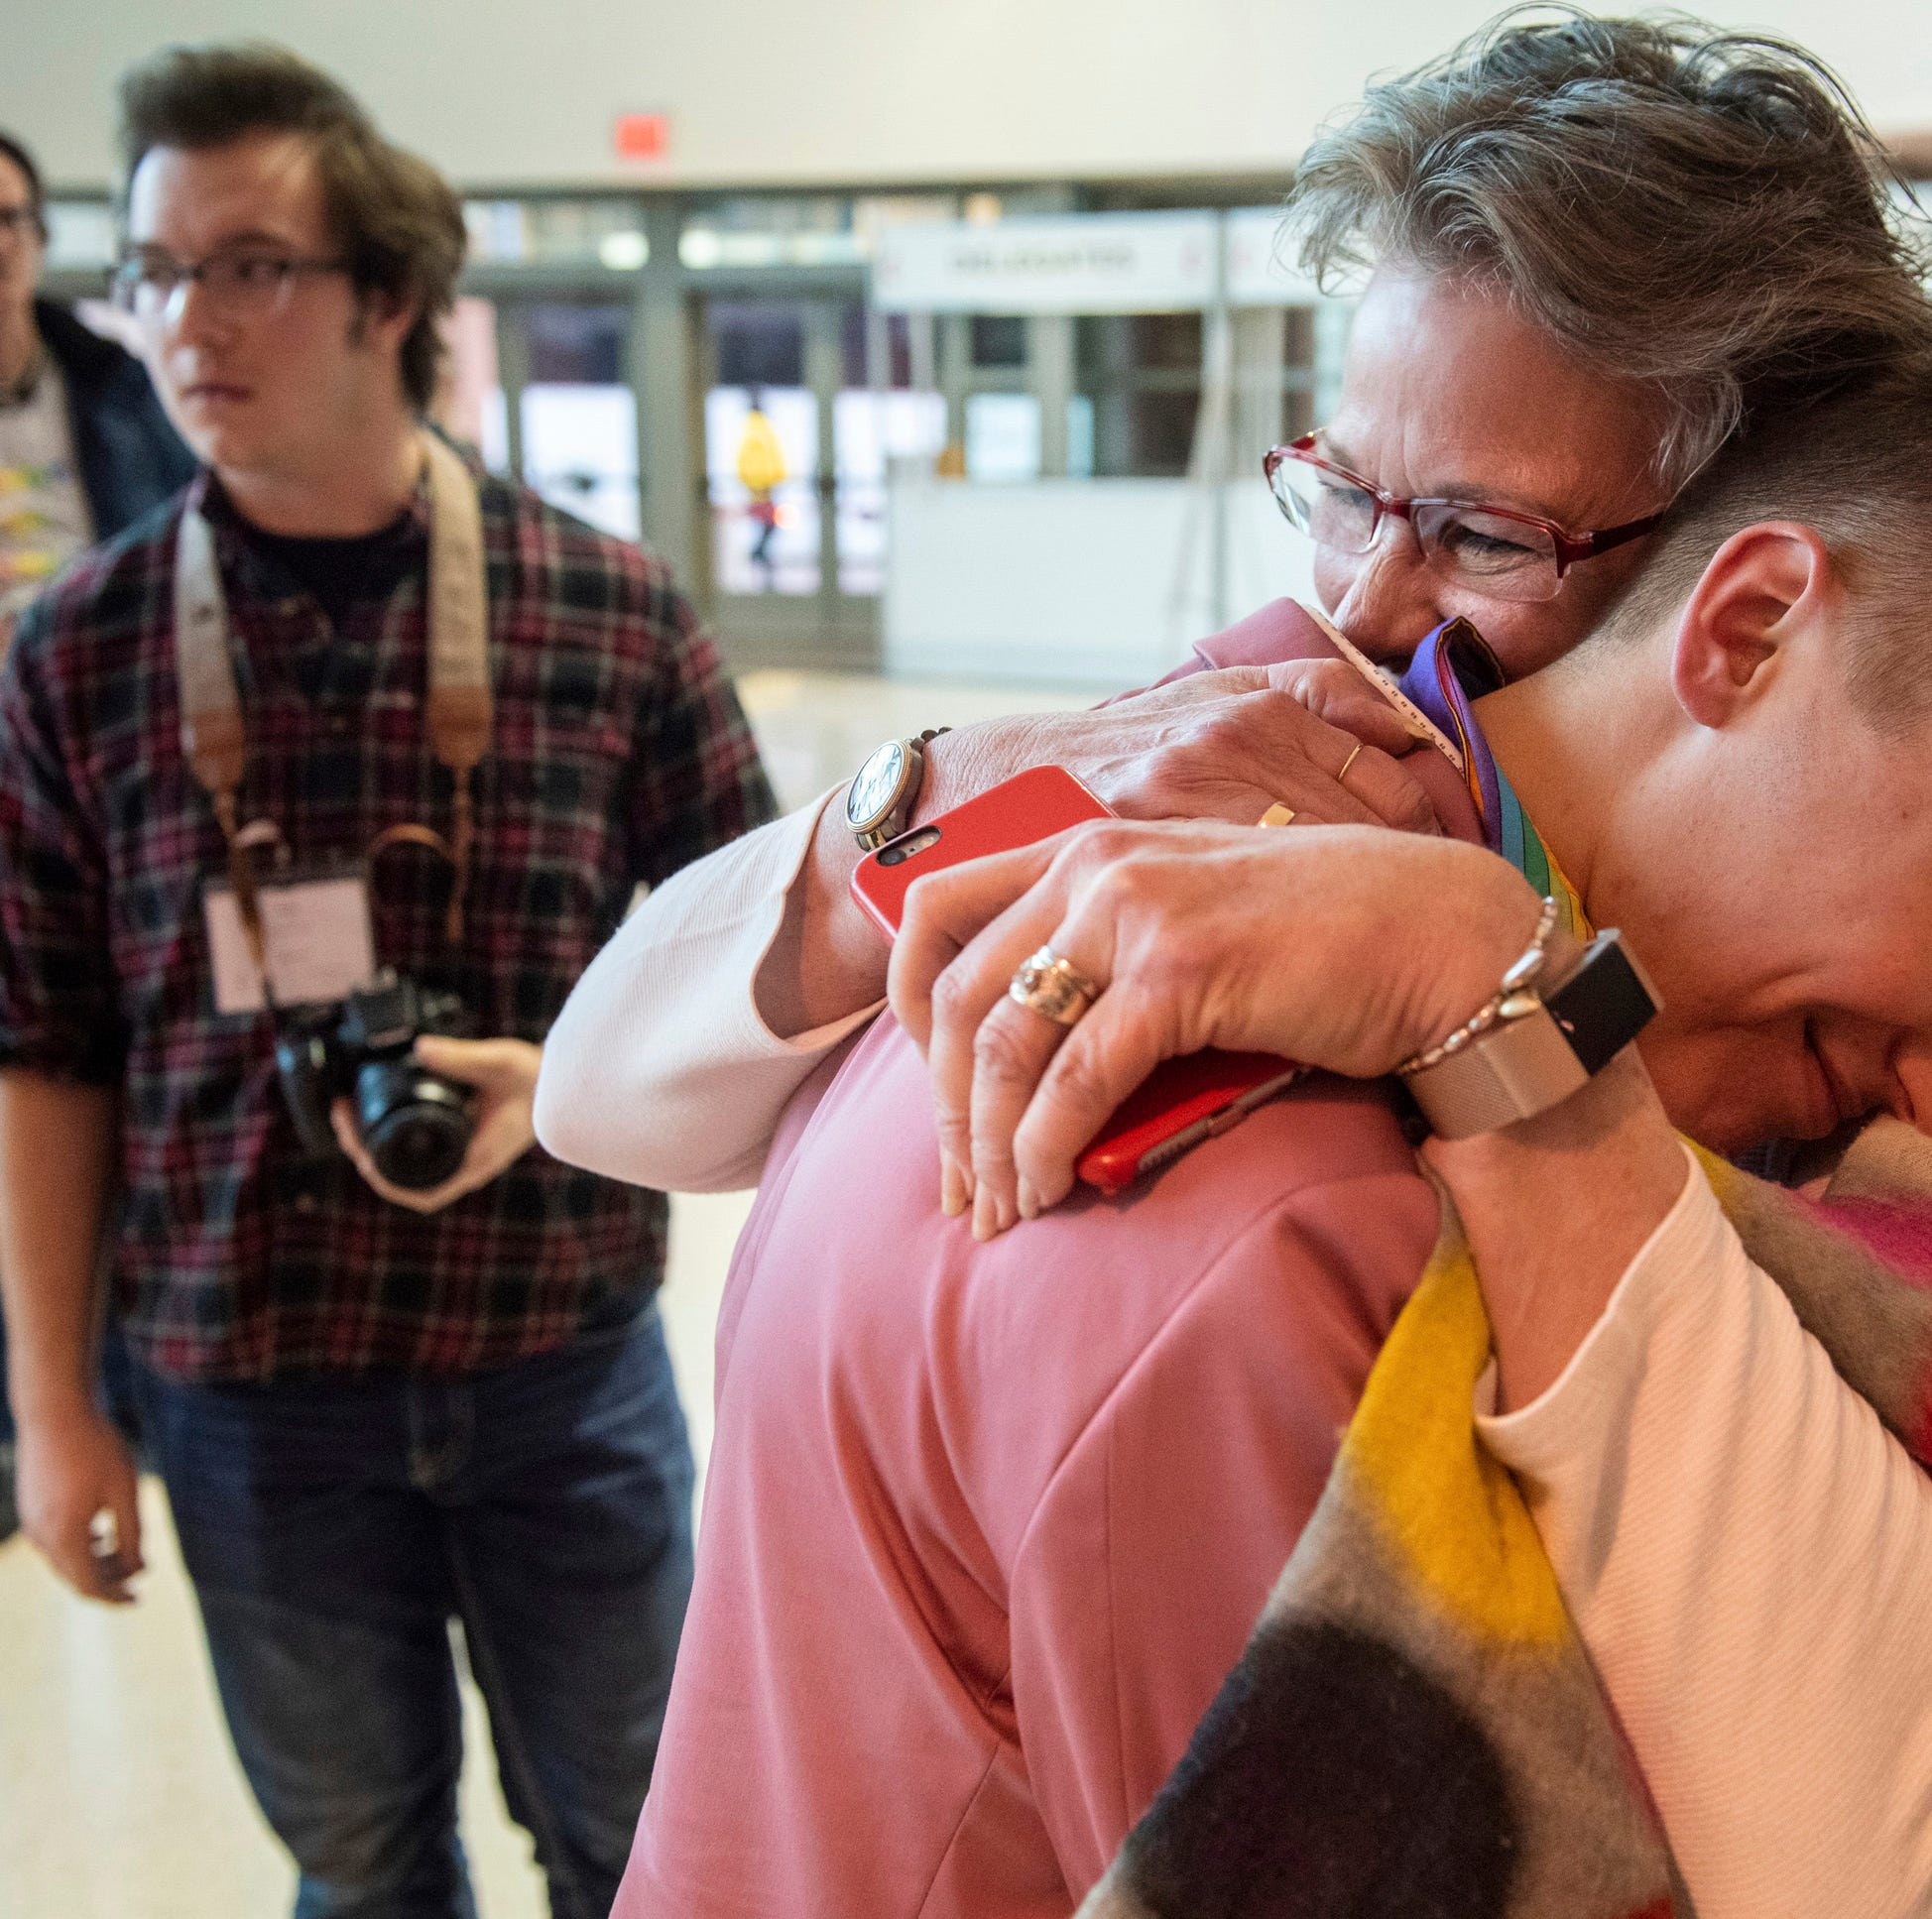 United Methodist Church: 3 takeaways from vote on same-sex marriage, LGBT clergy